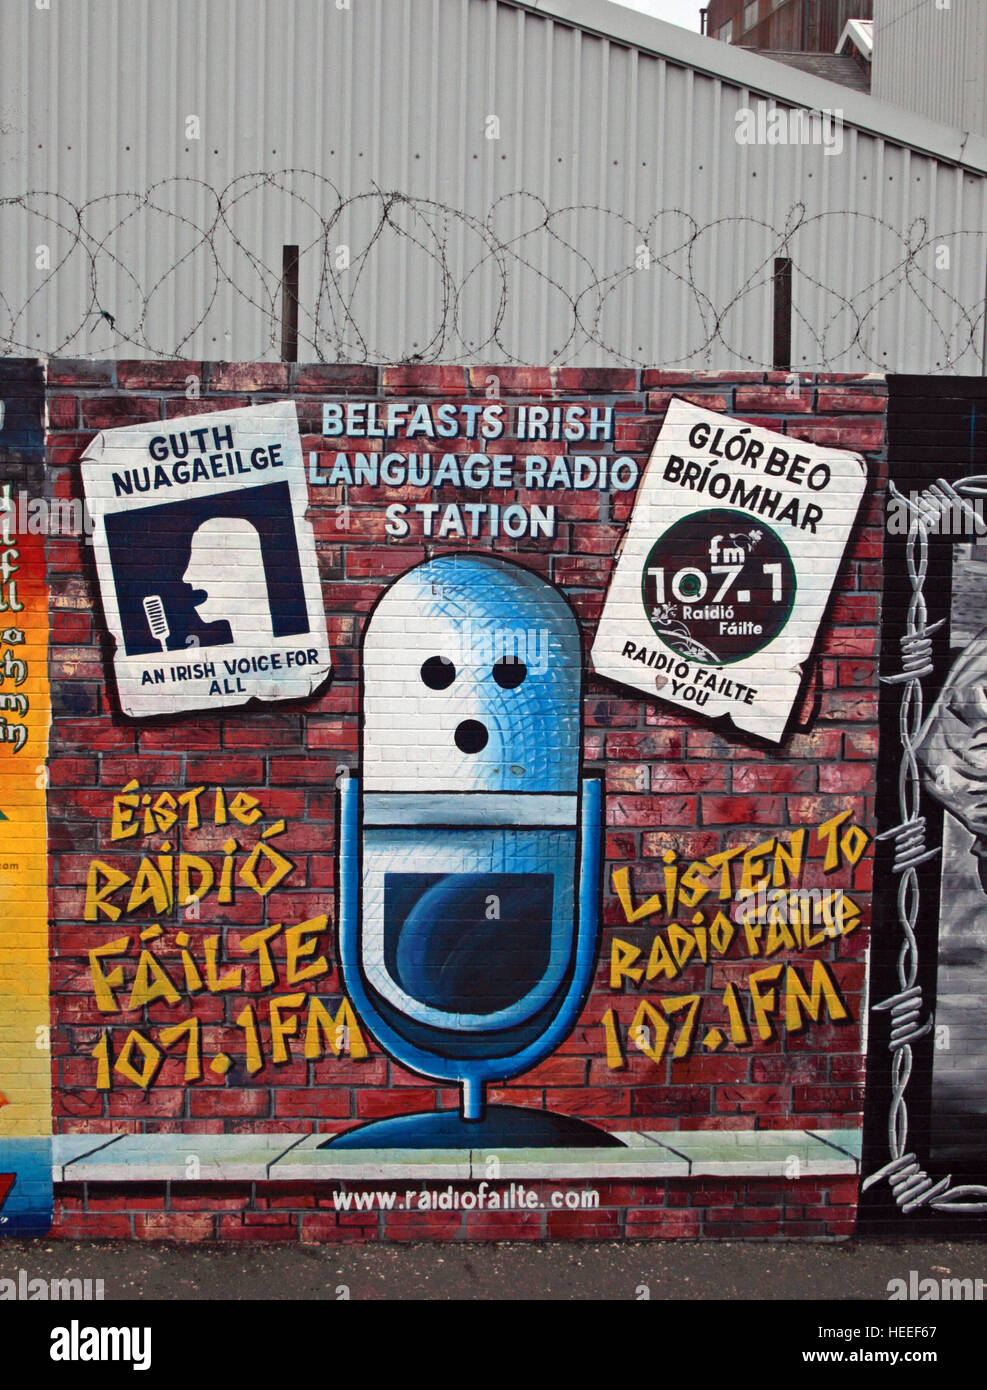 Road,painting,graffiti,resistance,IRA,peace,Northern Ireland,NI,UK,St,street,Eire,Irish,Republic,Irish Republic,conflict,Irish Republican Army,Political Change,Guth Nuagaeil,Irish,voice,for,all,Radio Failte,Mic,Microphone,GoTonySmith,@HotpixUK,Tony,Smith,UK,GB,Great,Britain,United,Kingdom,Irish,British,Ireland,problem,with,problem with,issue with,NI,Northern,Northern Ireland,Belfast,City,Centre,Art,Artists,the,troubles,The Troubles,Good Friday Agreement,Peace,honour,painting,wall,walls,tribute,republicanism,Fight,Justice,West,Beal,feirste,martyrs,social,tour,tourism,tourists,urban,six,counties,6,backdrop,county,Antrim,occupation,good,Friday,agreement,peace,reconciliation,IRA,terror,terrorists,genocide,Buy Pictures of,Buy Images Of,Images of,Stock Images,Tony Smith,United Kingdom,Great Britain,British Isles,republican cause